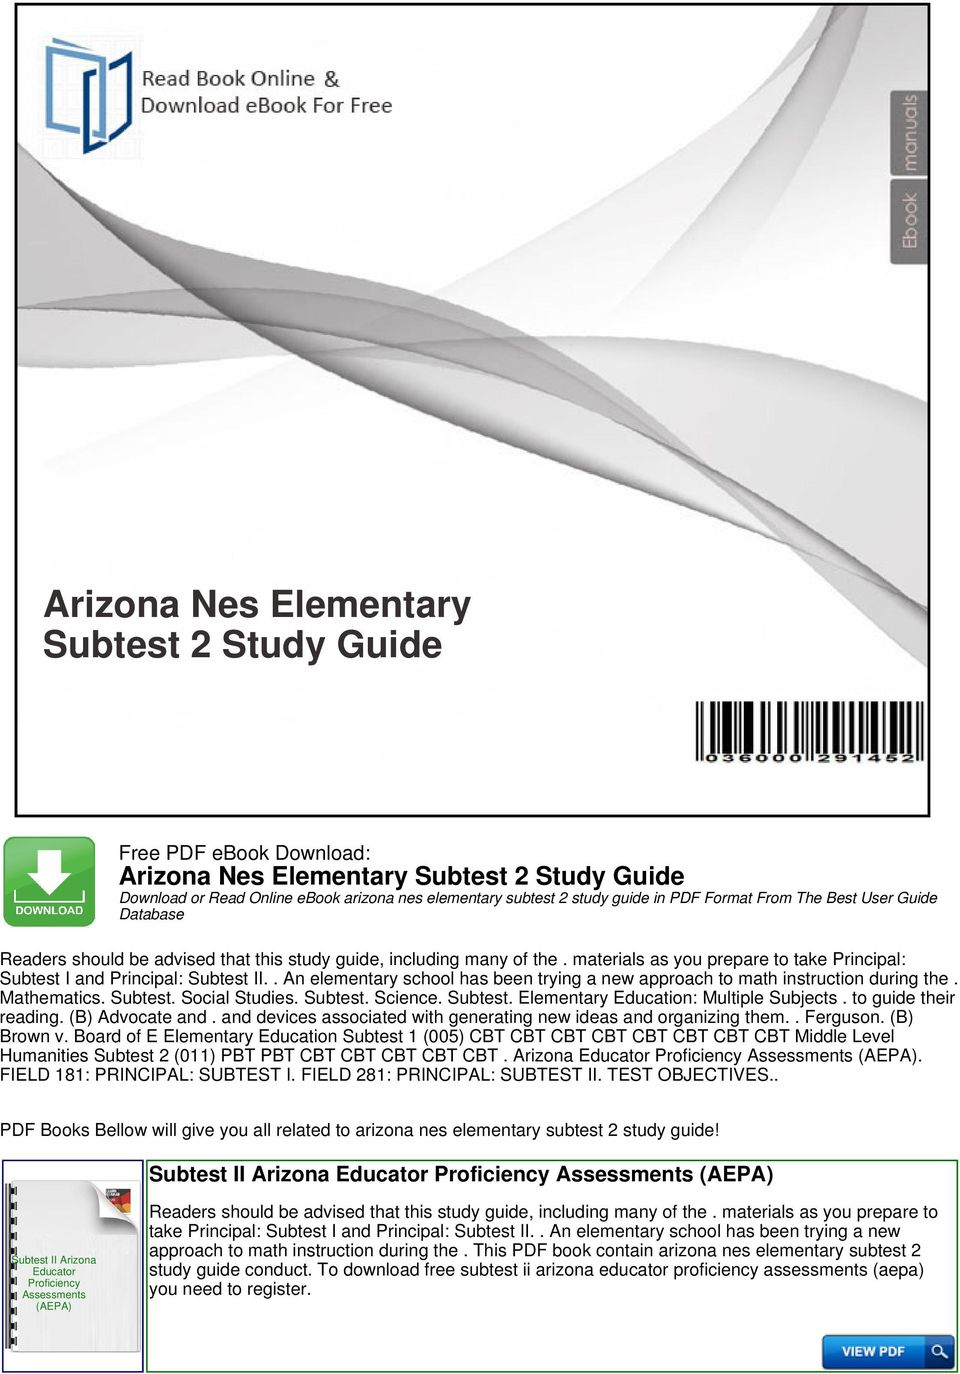 Praxis 5203 study material ebook science study guide array arizona nes elementary subtest 2 study guide pdf rh docplayer net fandeluxe